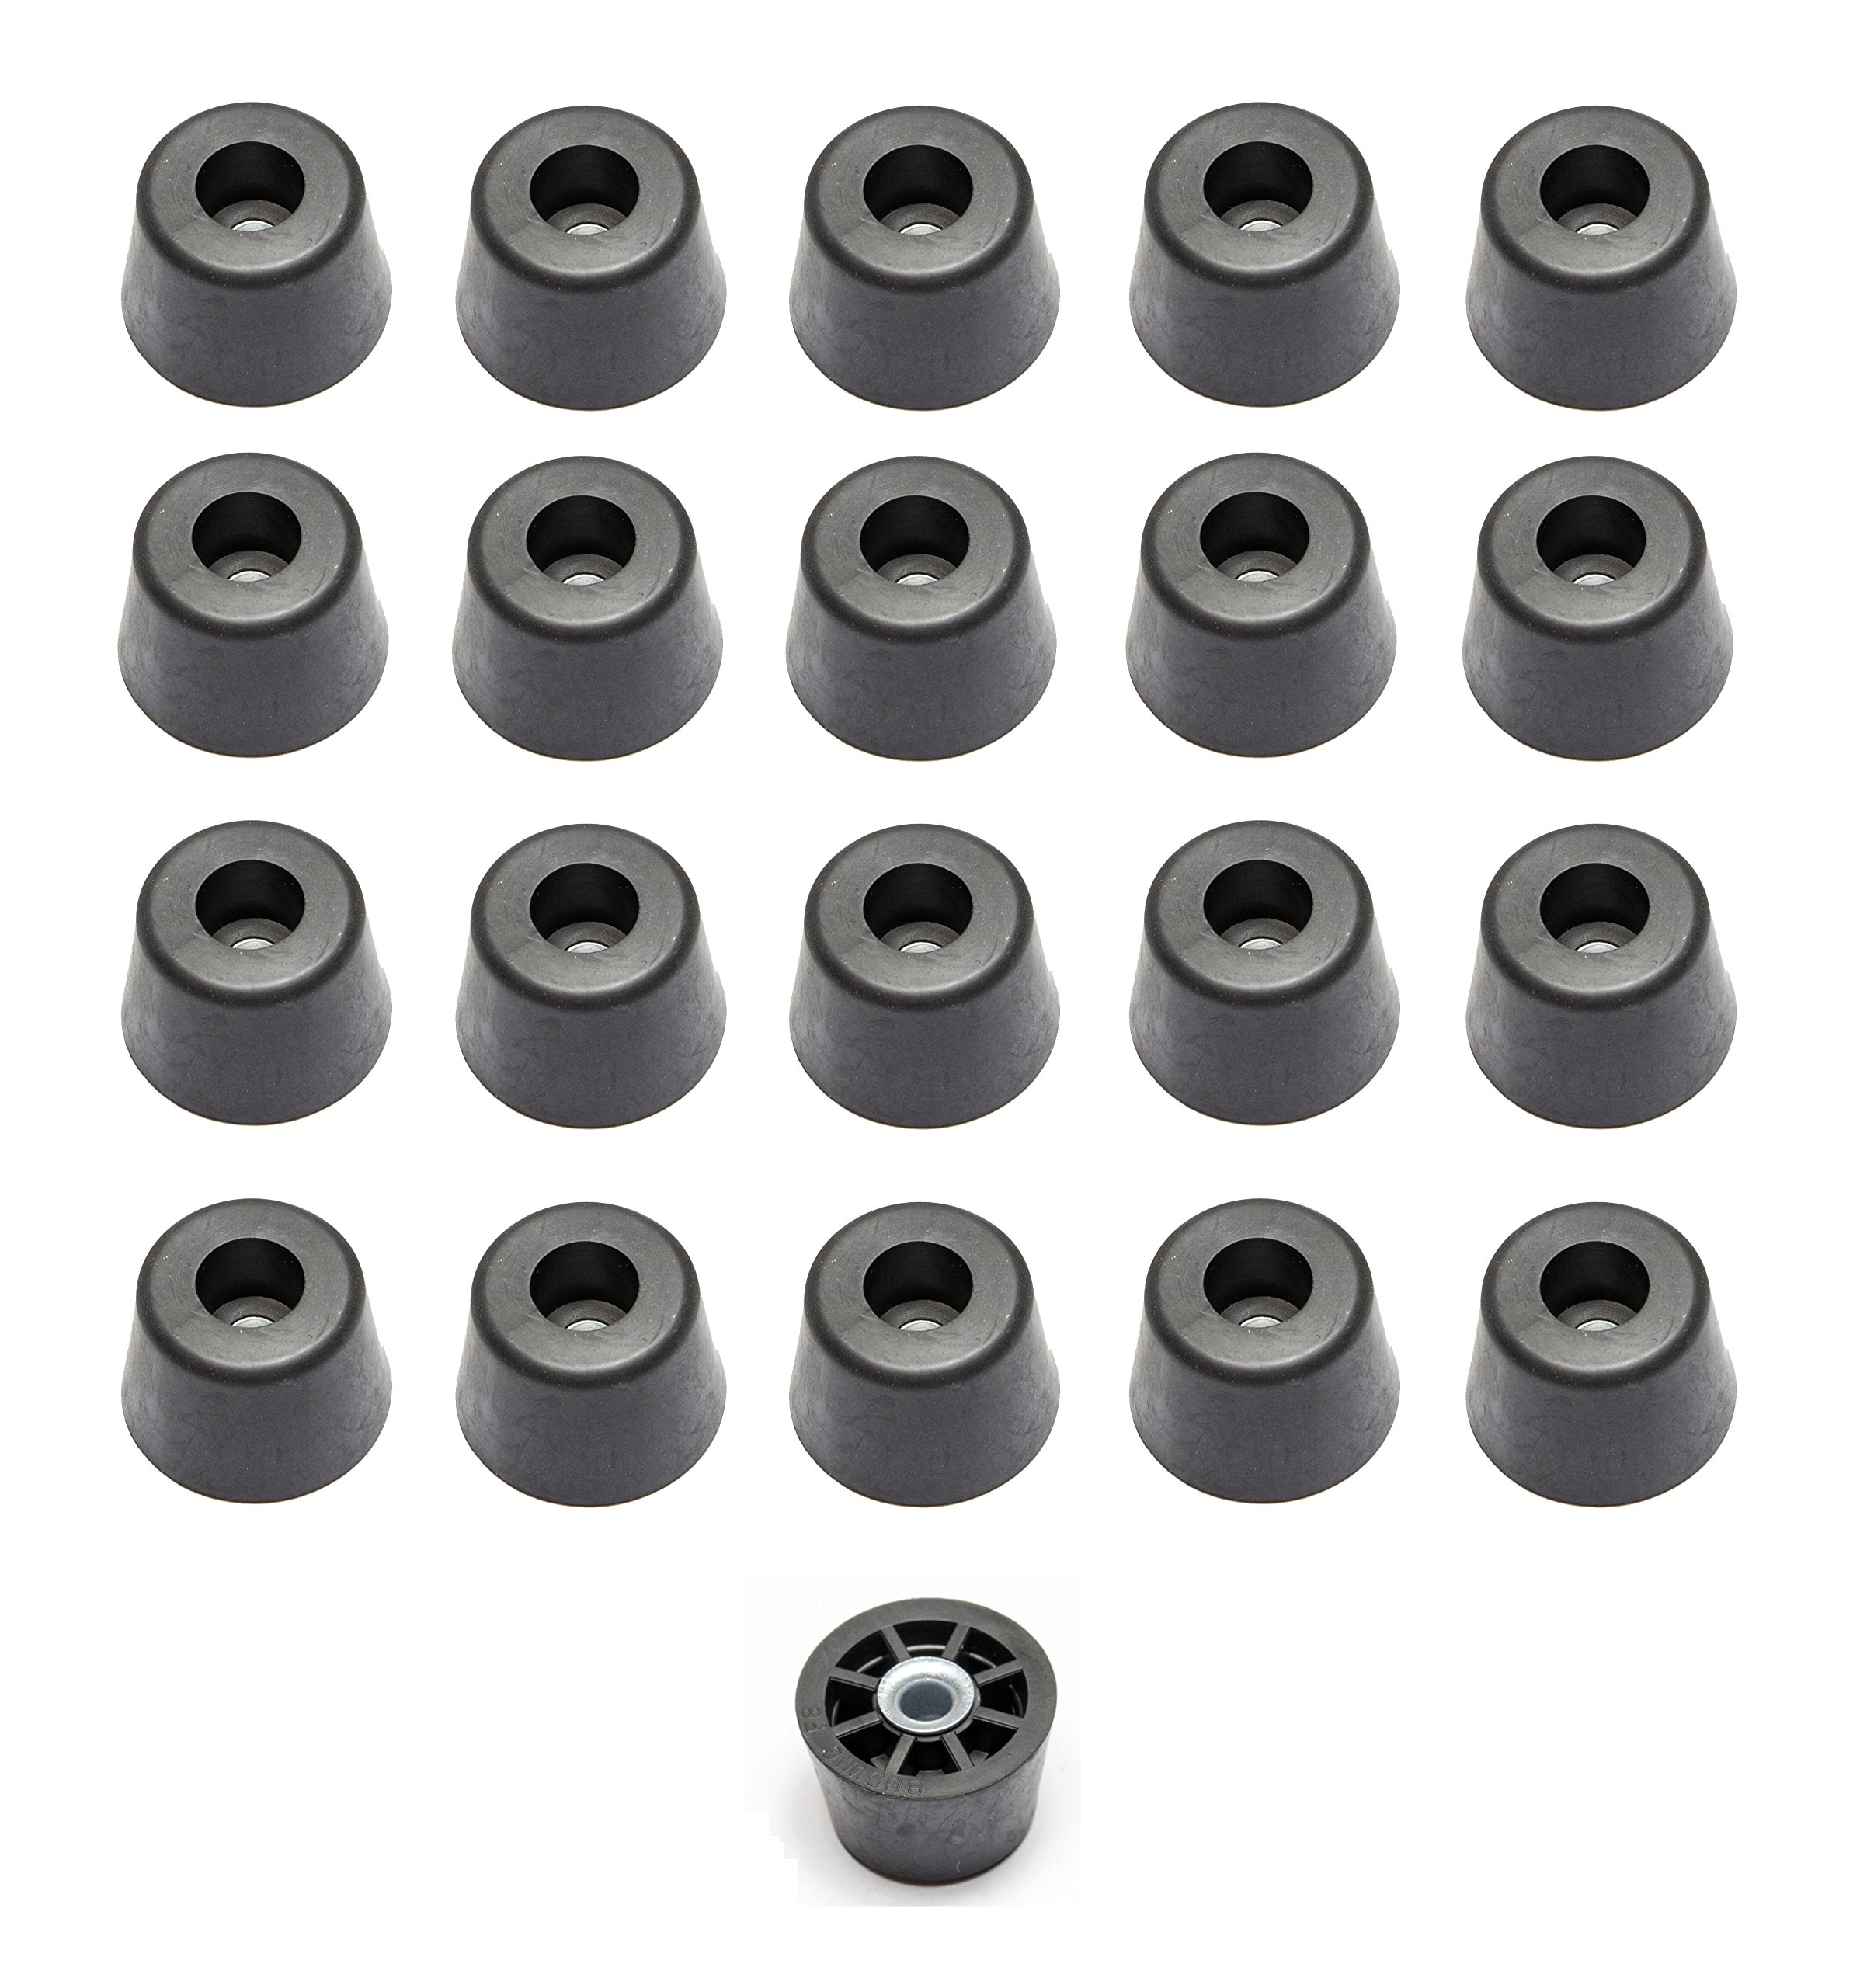 20 Medium Extra Tall Round Rubber Feet - .625 H x .932 D - Made in USA - Food Safe by Linear Motion Labs